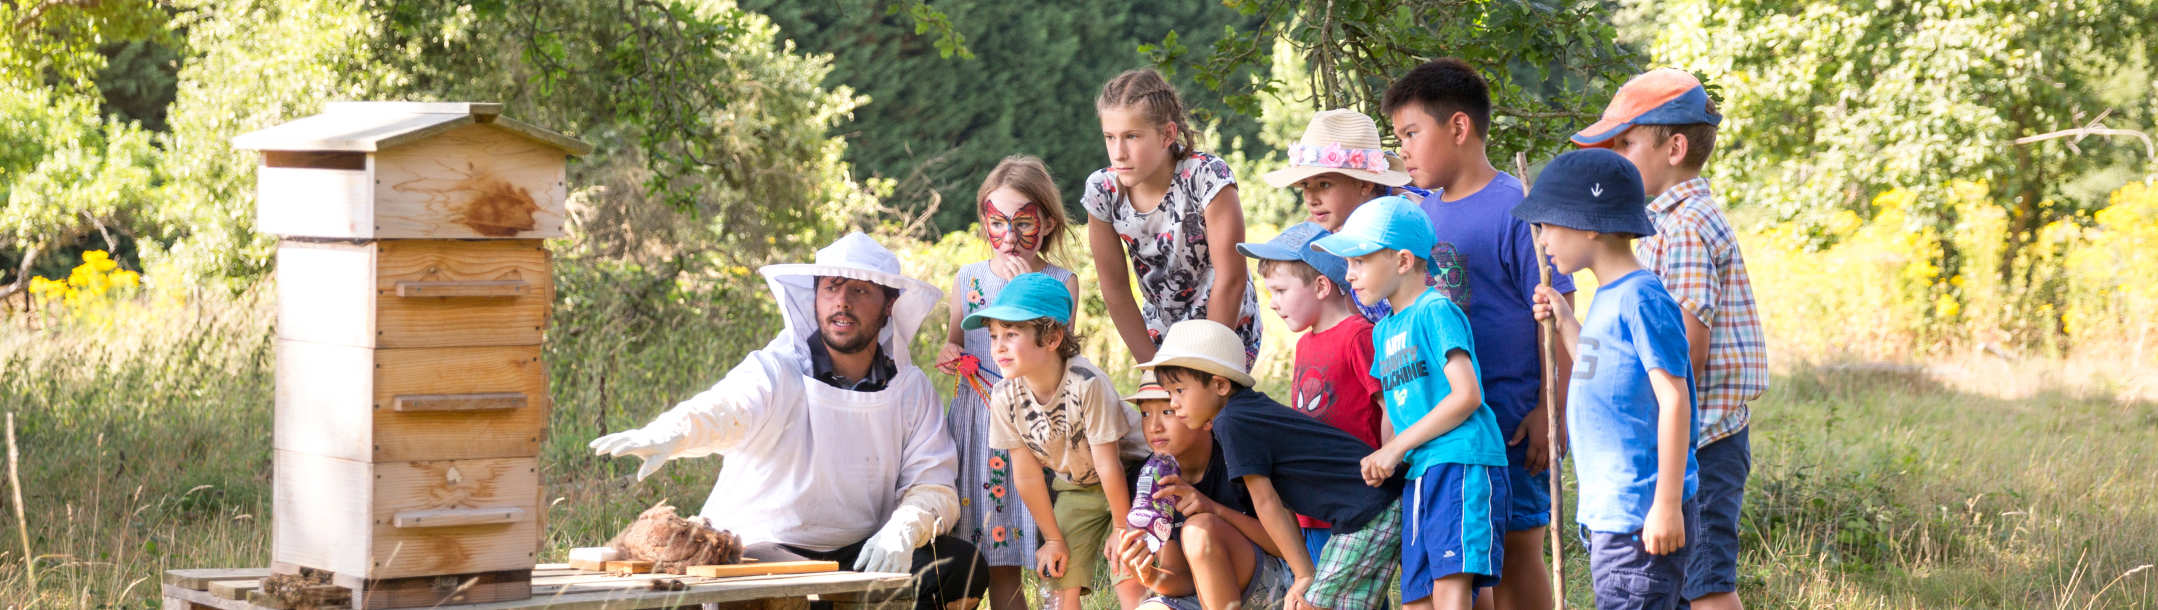 Bugs, Birds and Beasts Day at Silwood Park